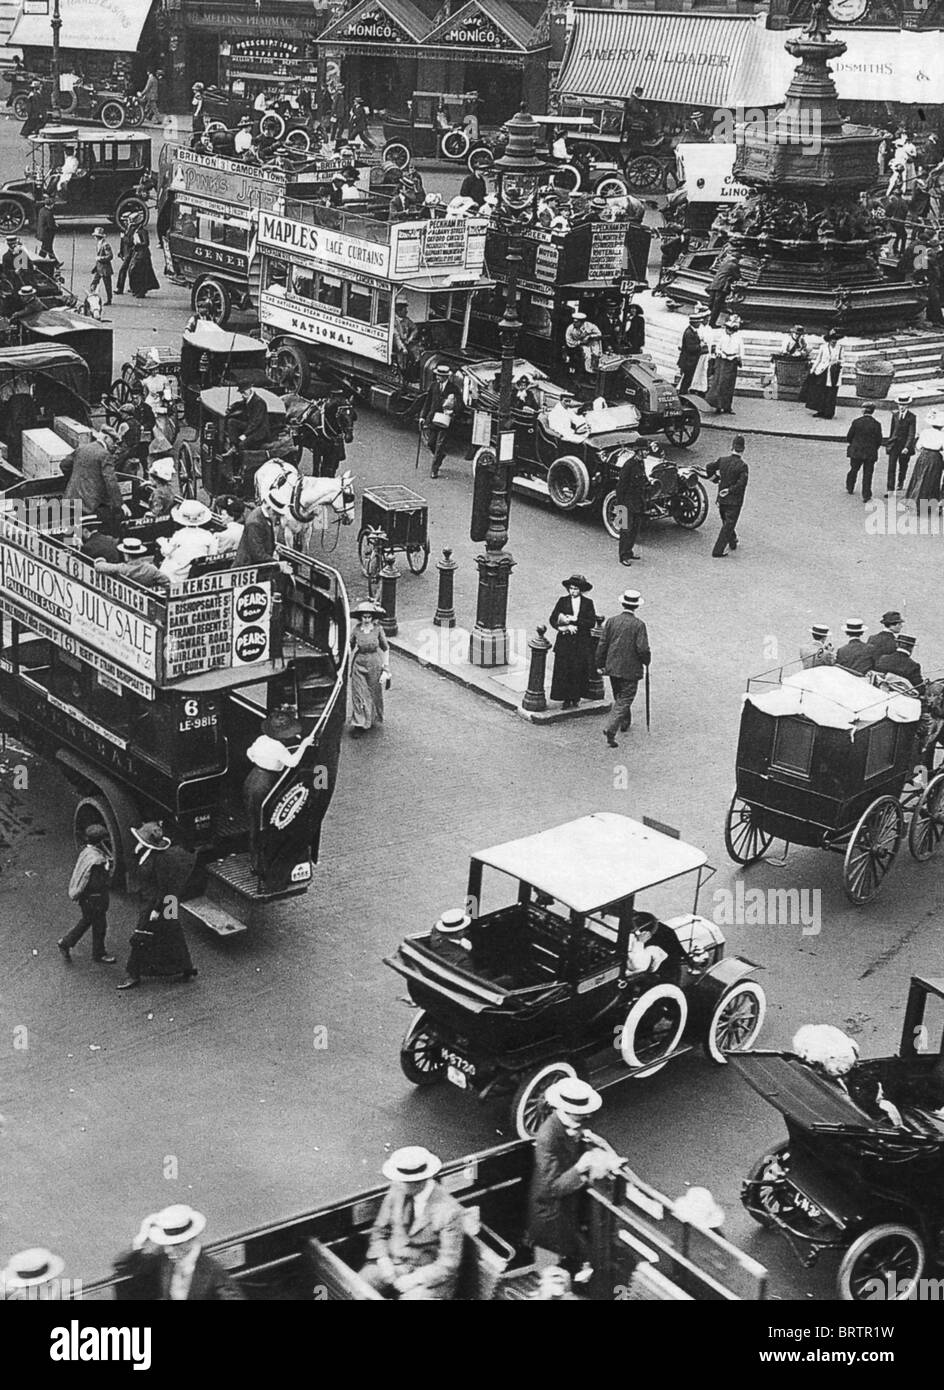 PICCADILLY CIRCUS, London, in 1912 with Eros statue at top right - Stock Image